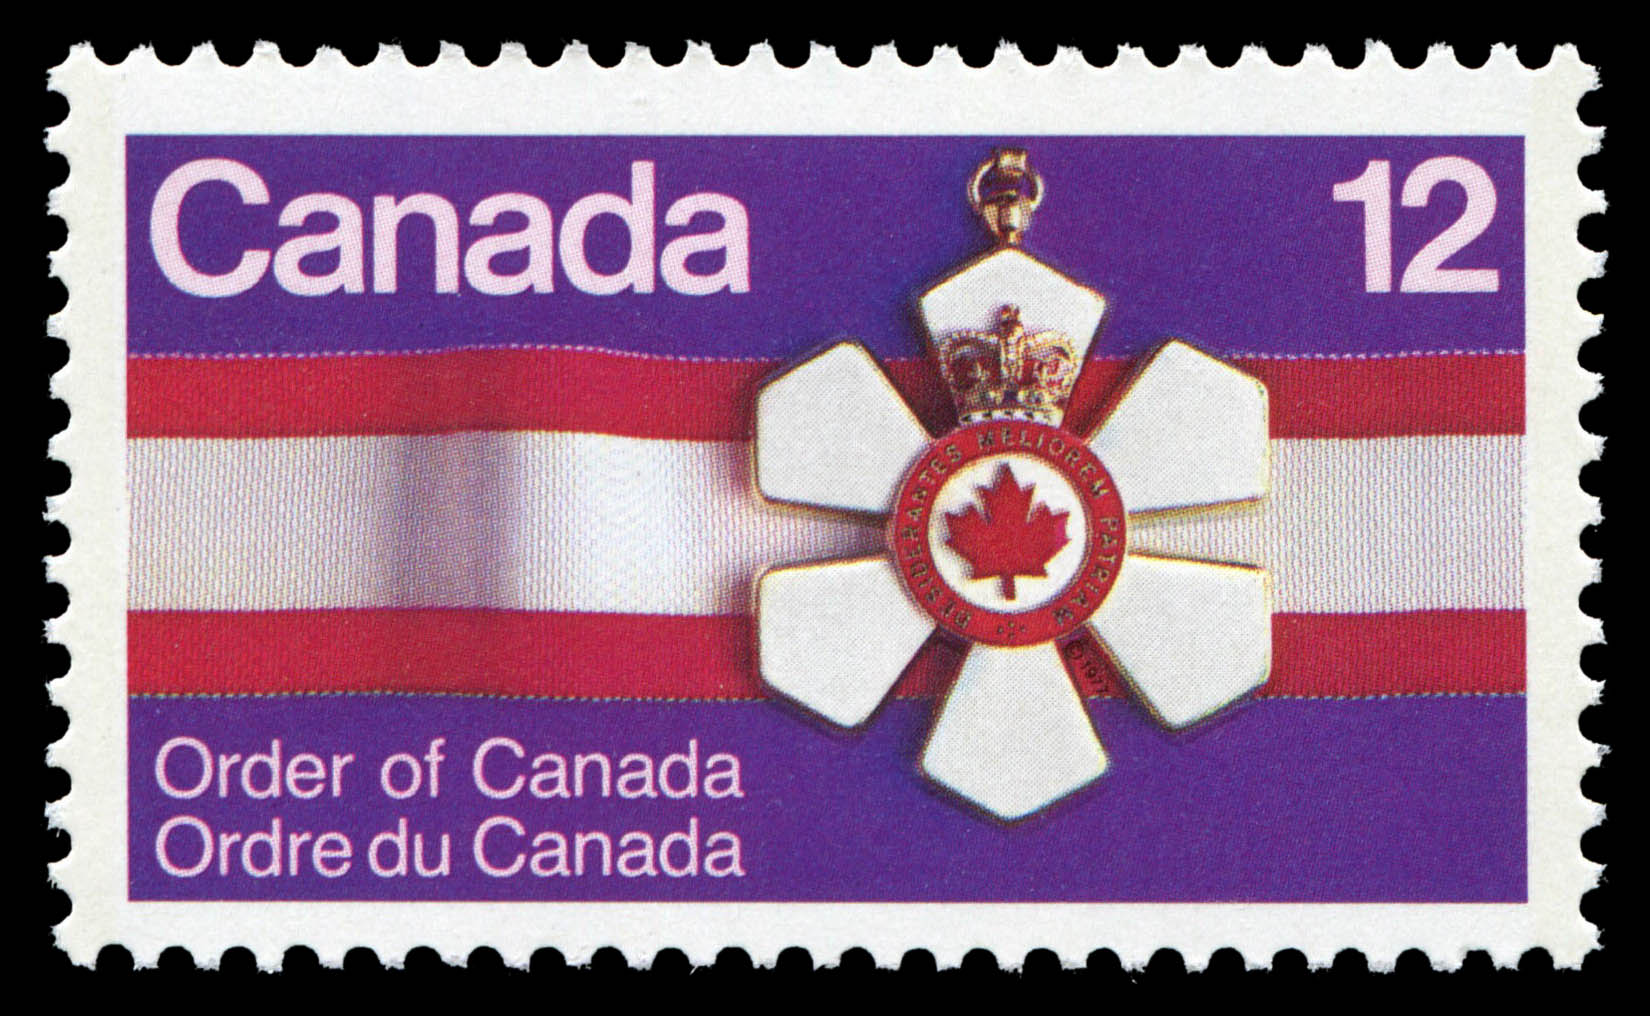 Order of Canada Canada Postage Stamp